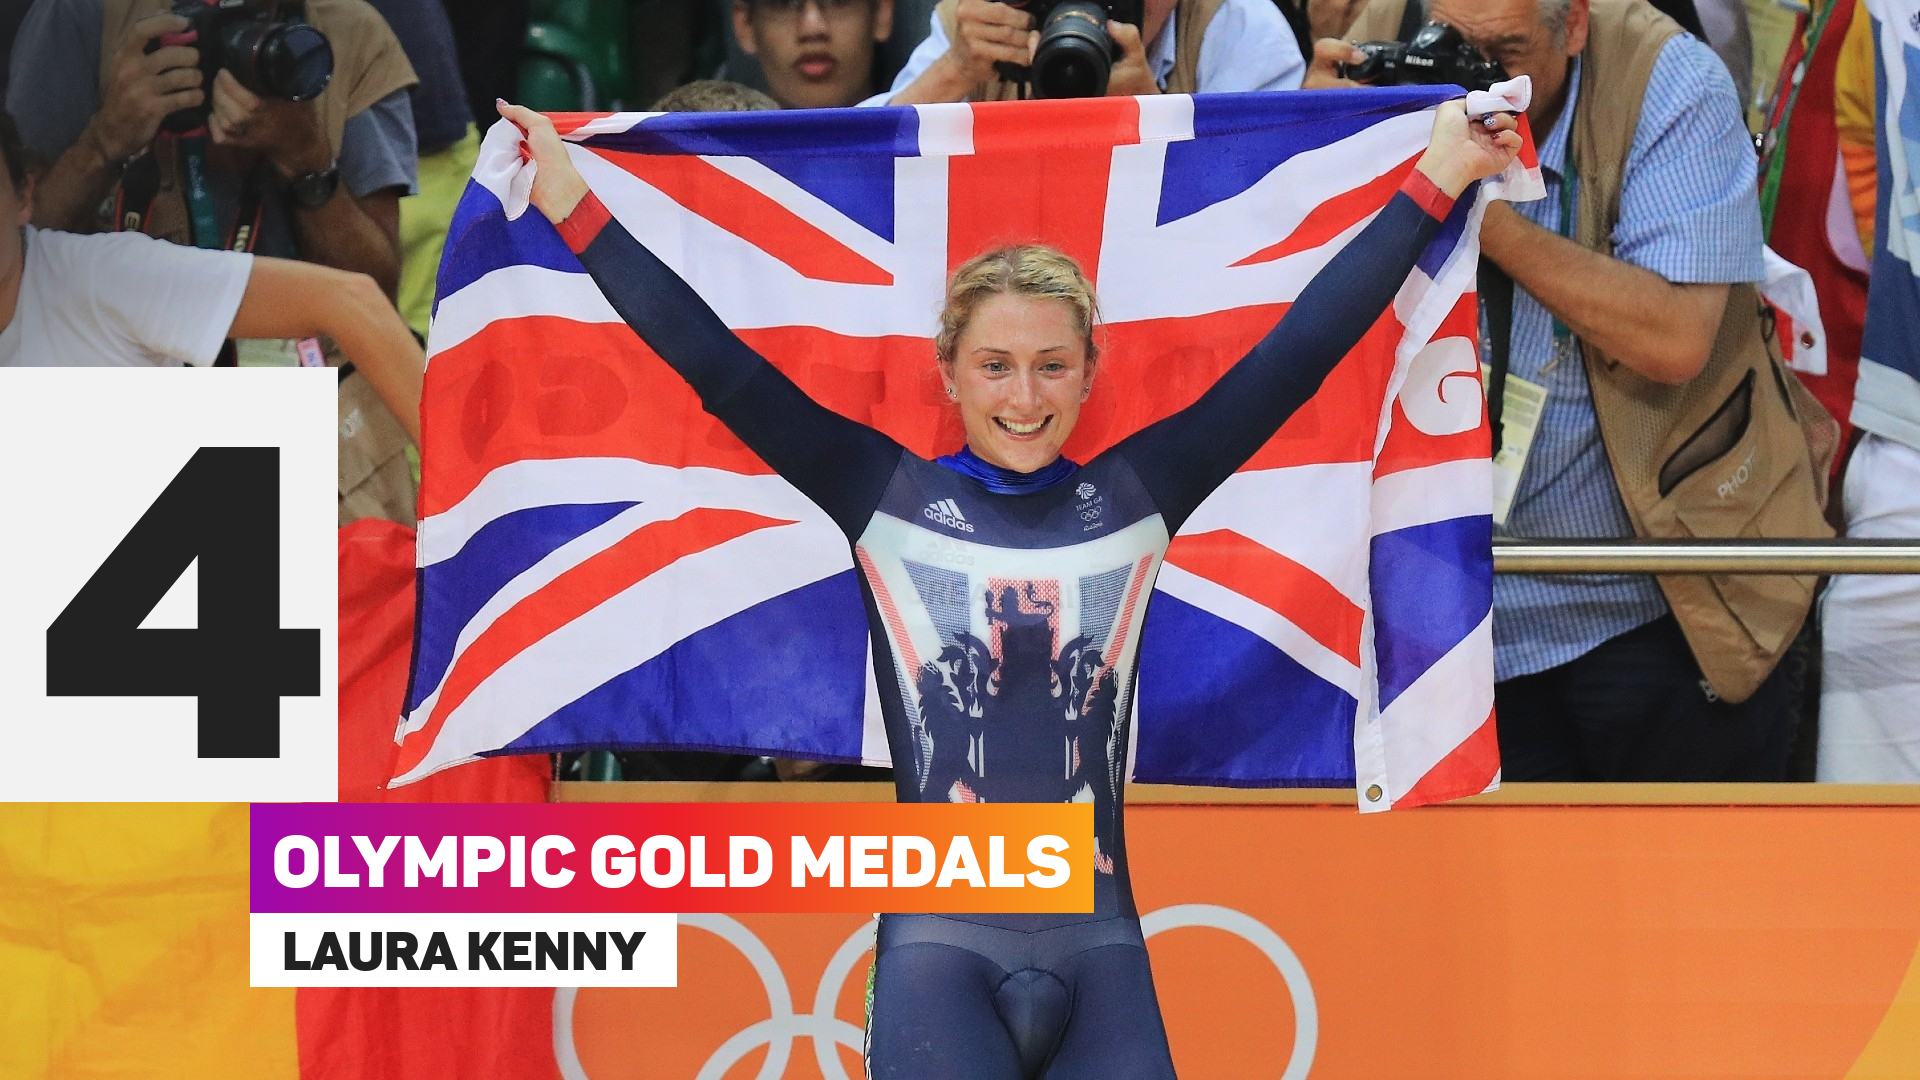 Laura Kenny has won four gold medals